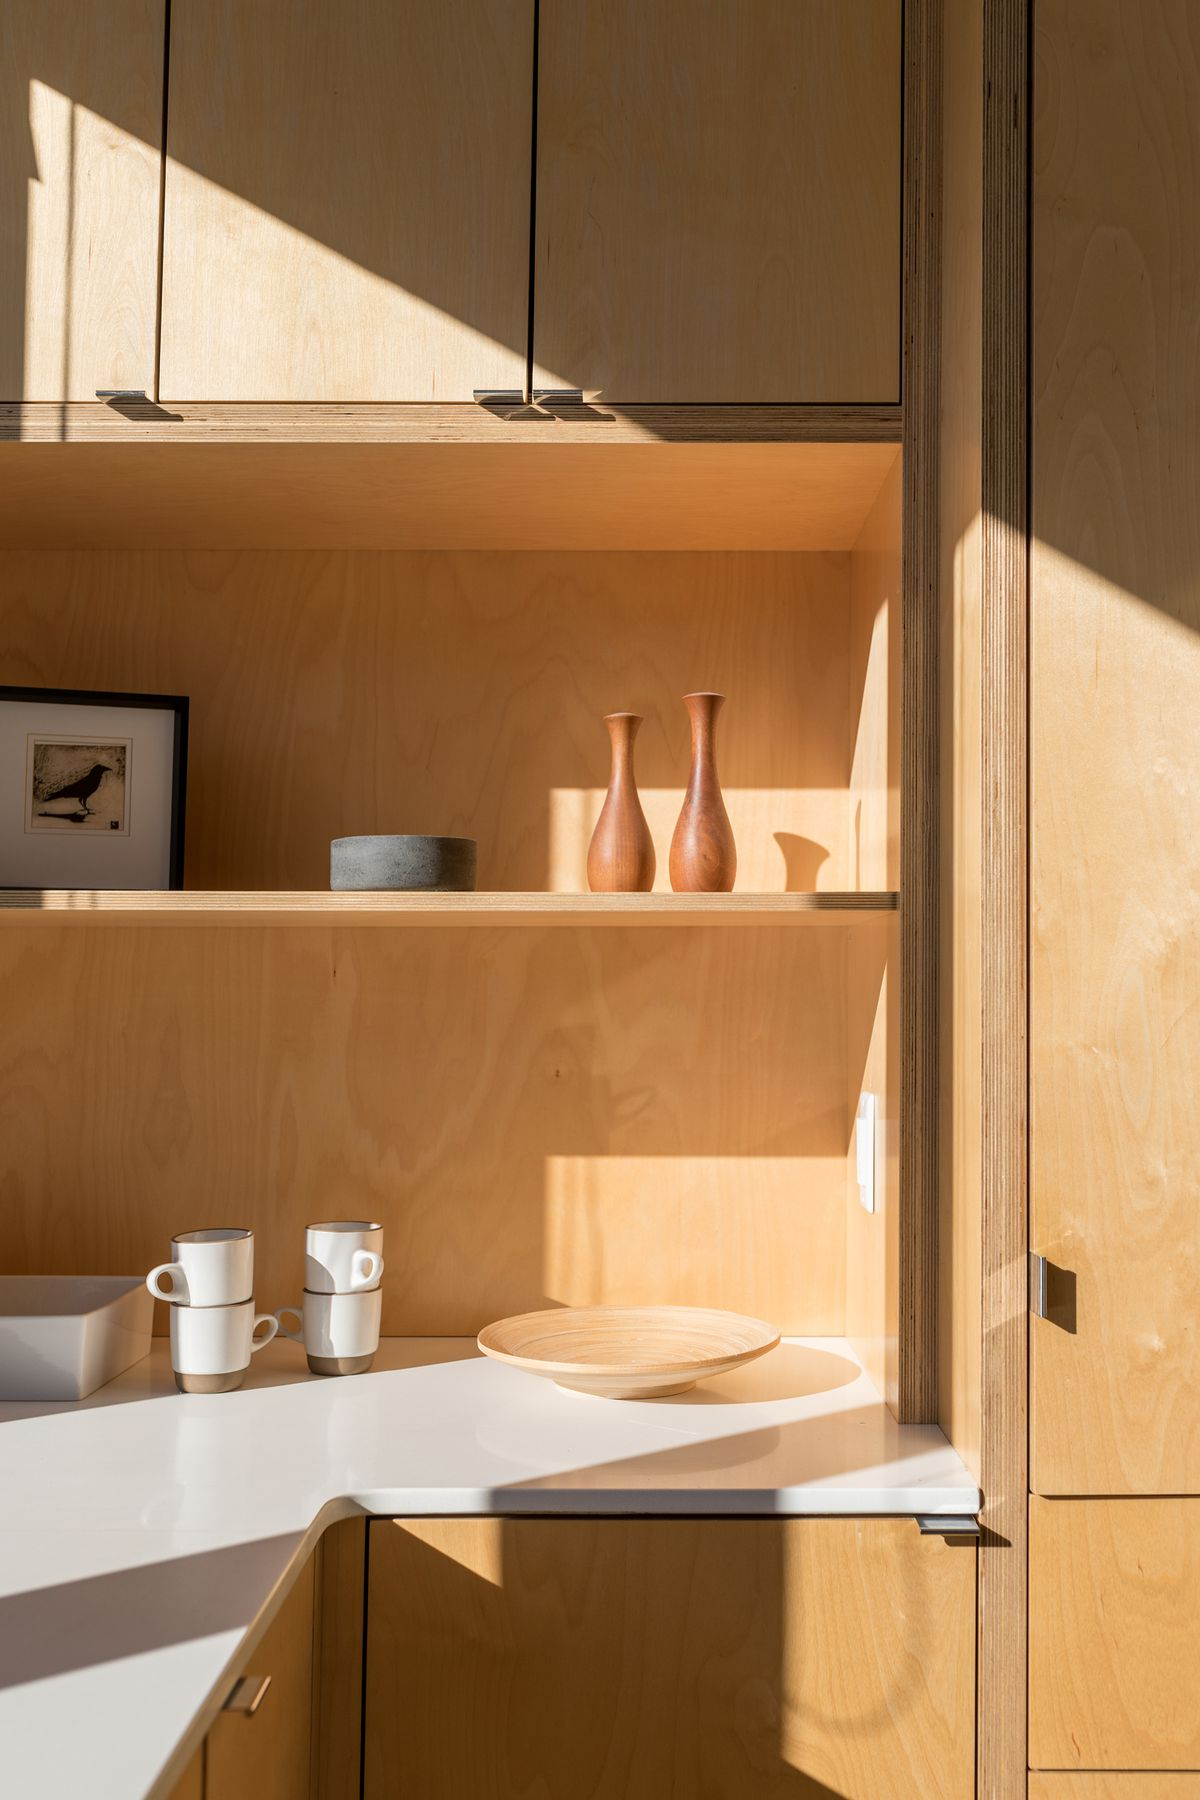 Plywood cabinetry is throughout the house, it makes up the light-wood-colored cabinetry.